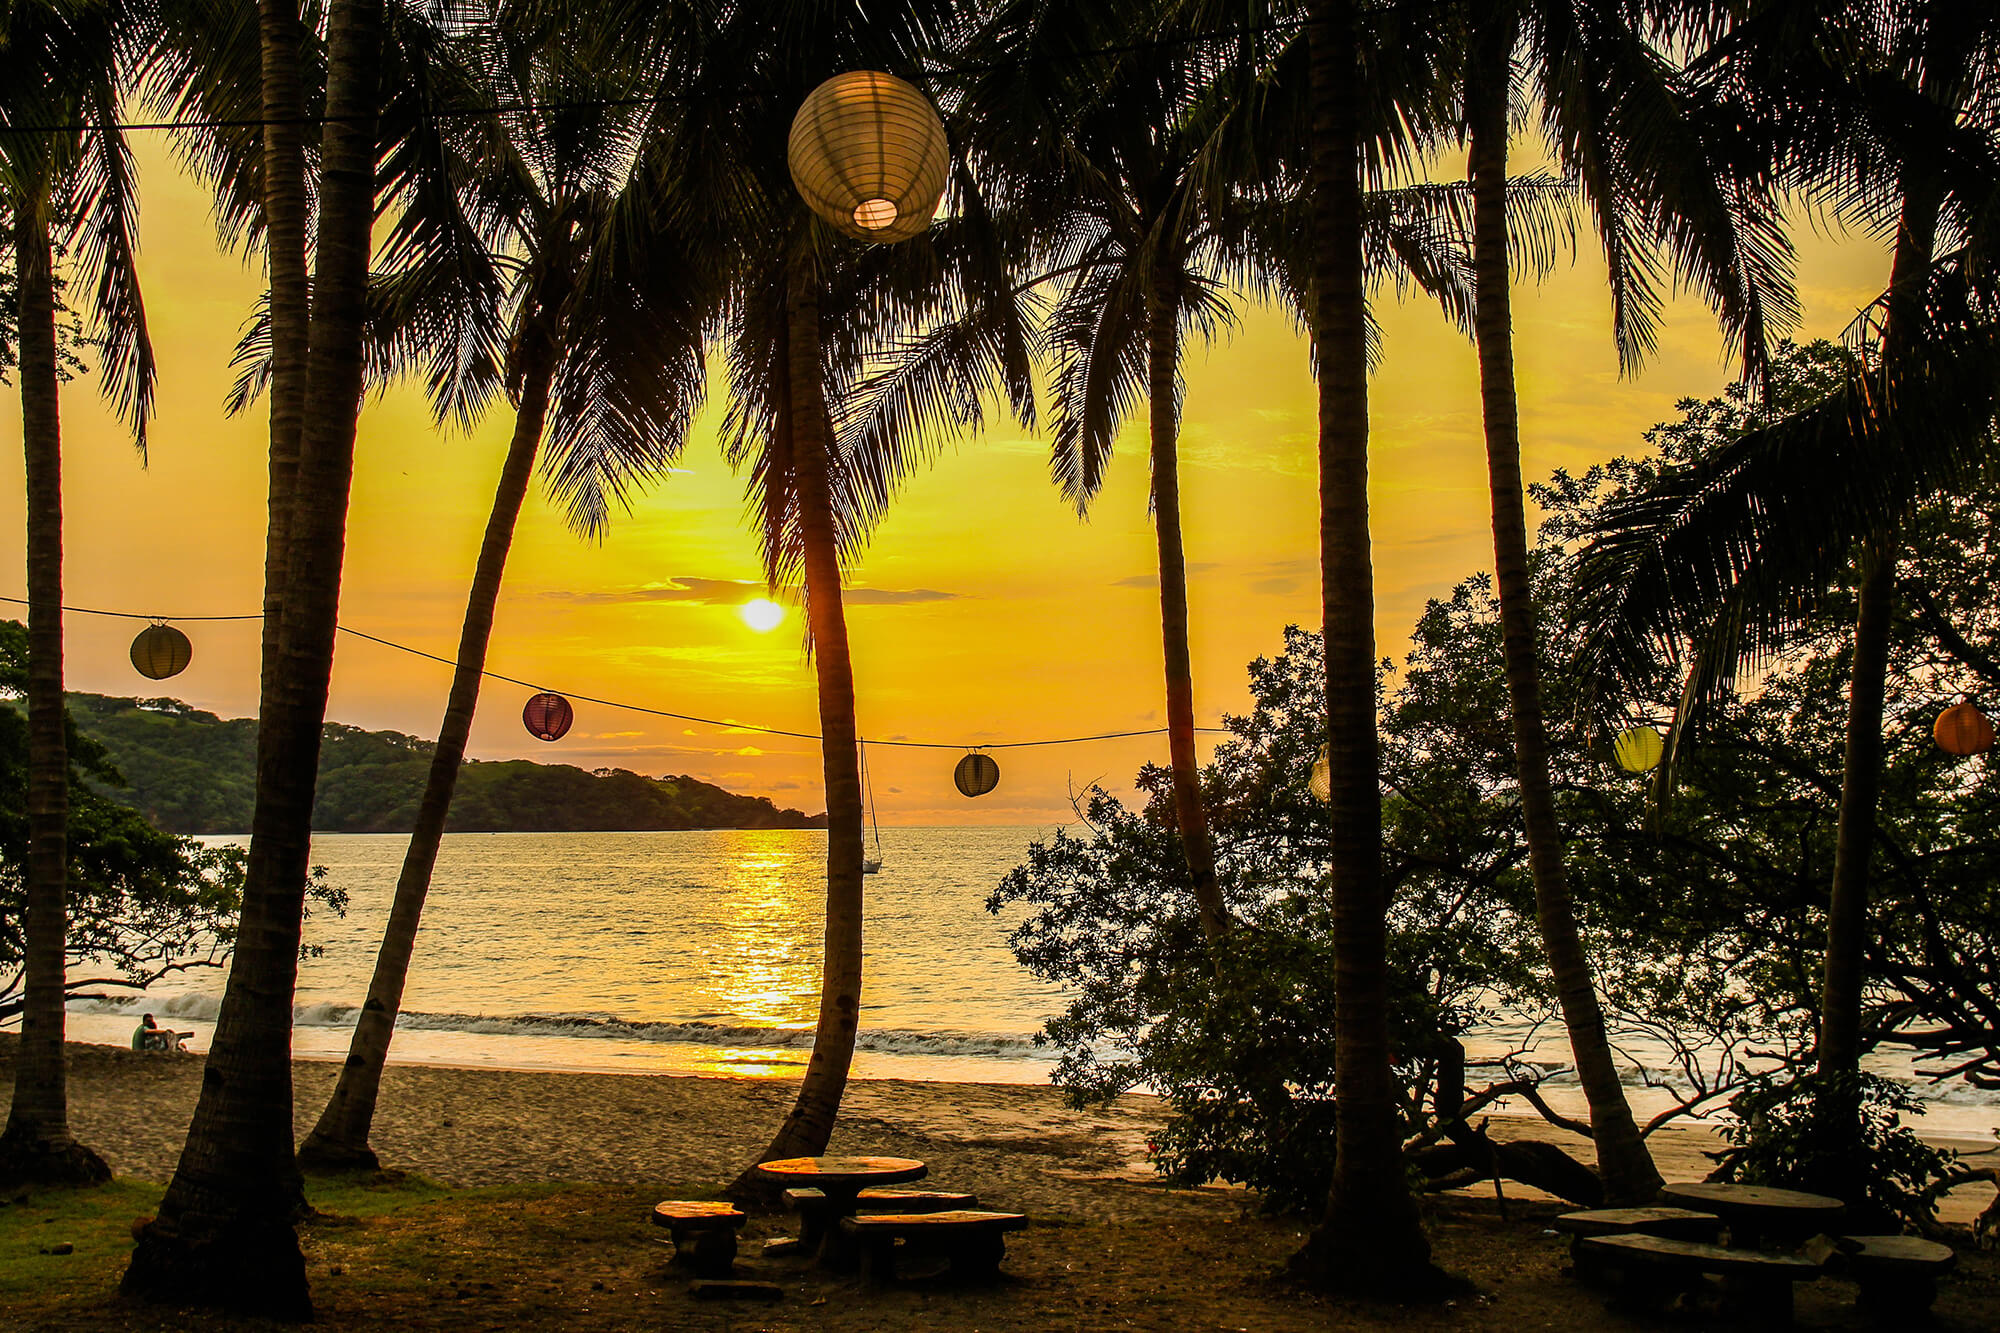 Golden Beach with Palm Tree's and Lanterns